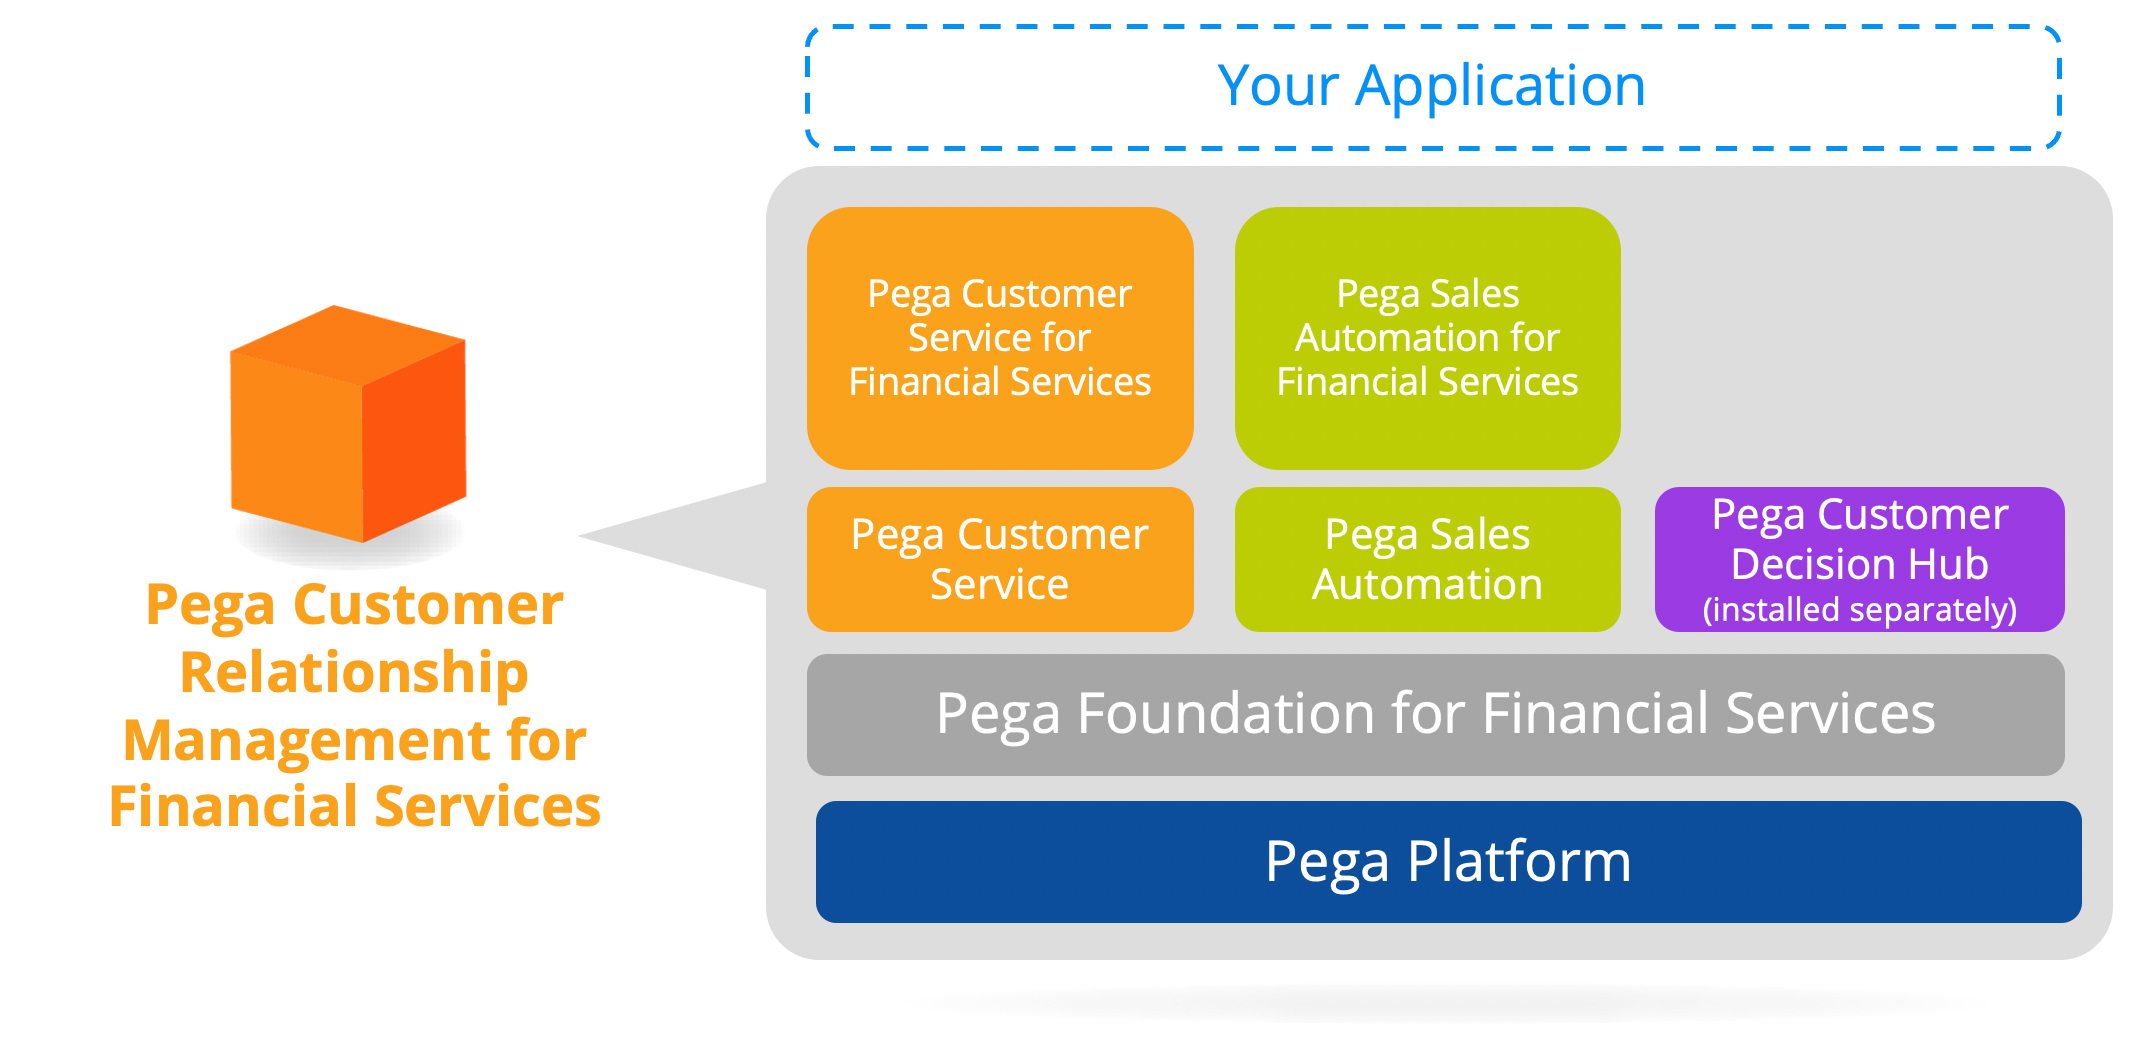 Pega Sales Automation for Financial Services application stack